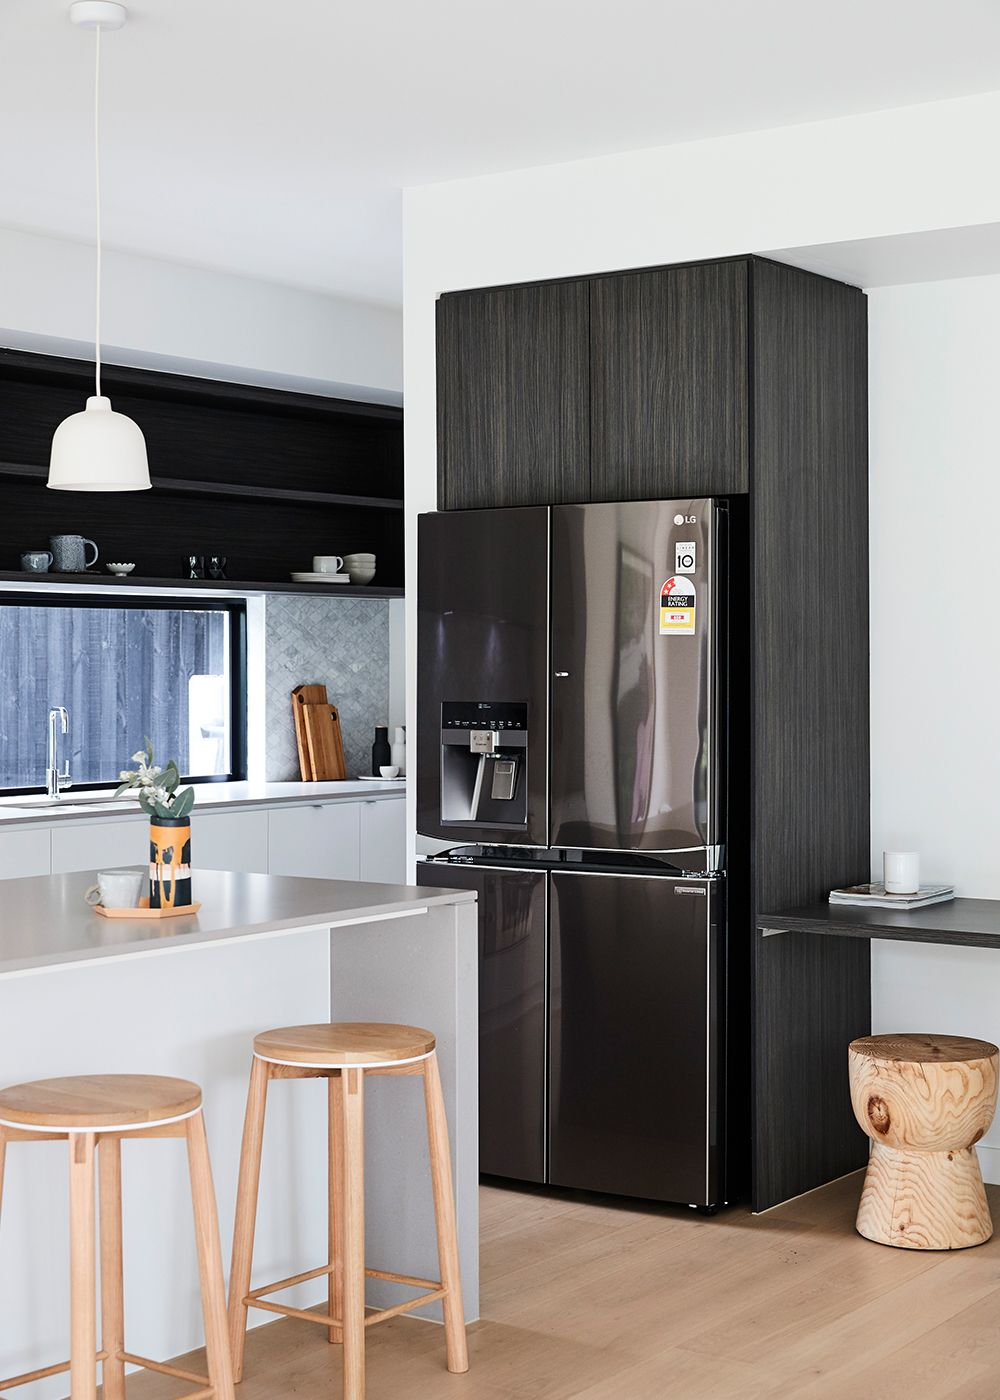 How To Create A State Of The Art Kitchen